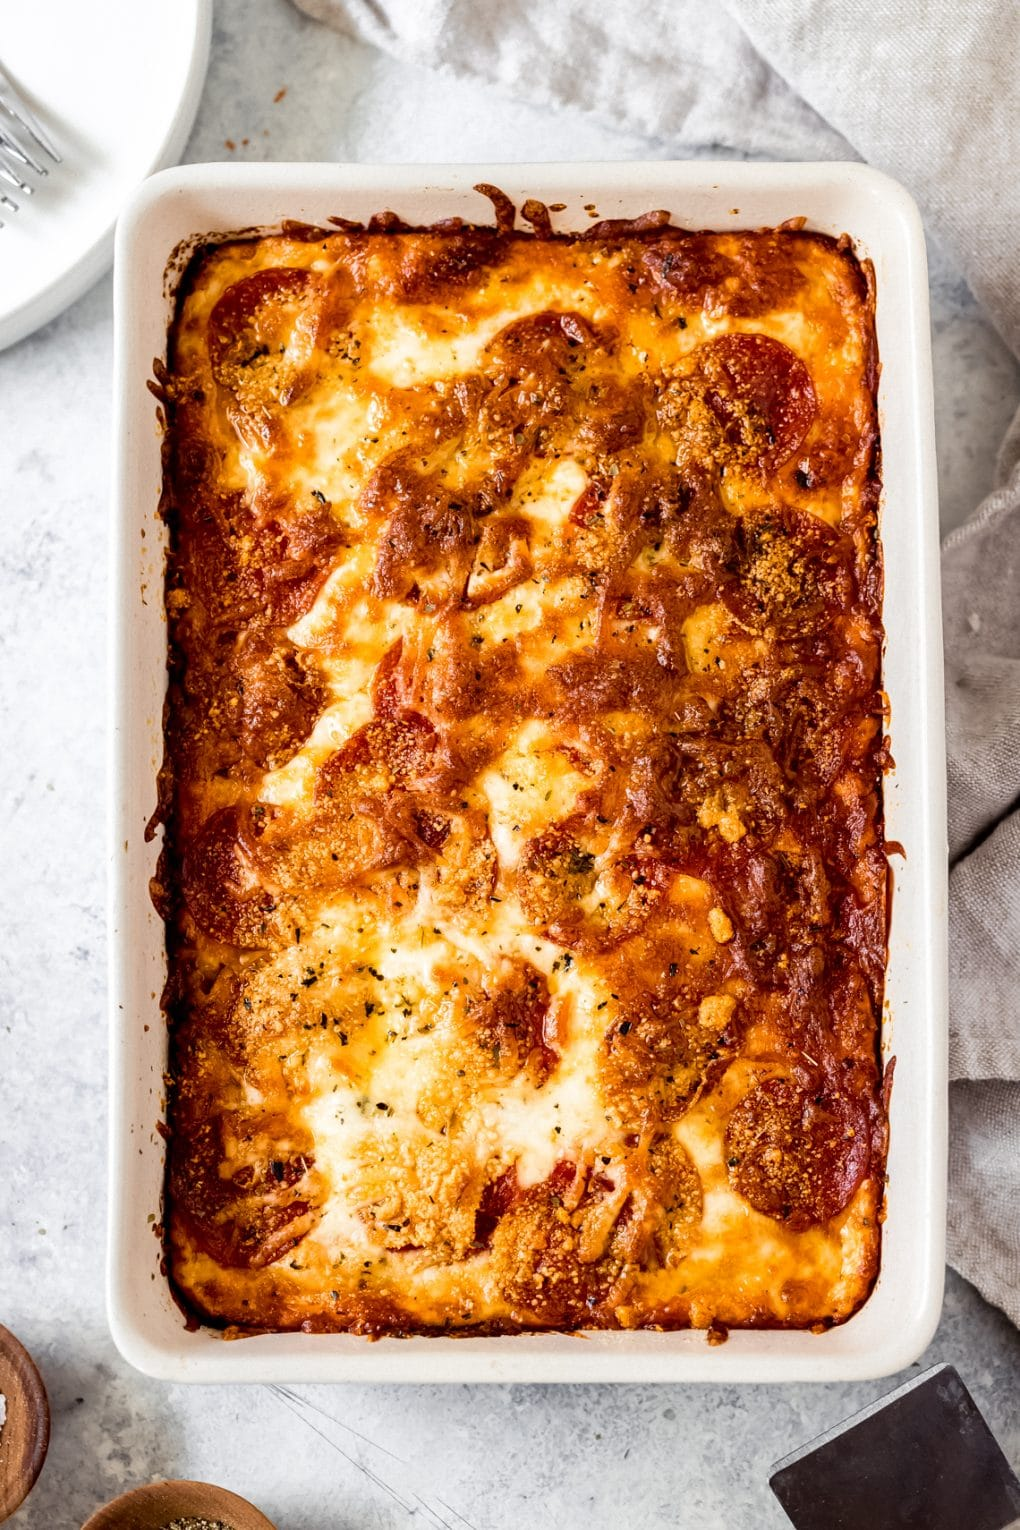 a cooked pizza baked spaghetti casserole